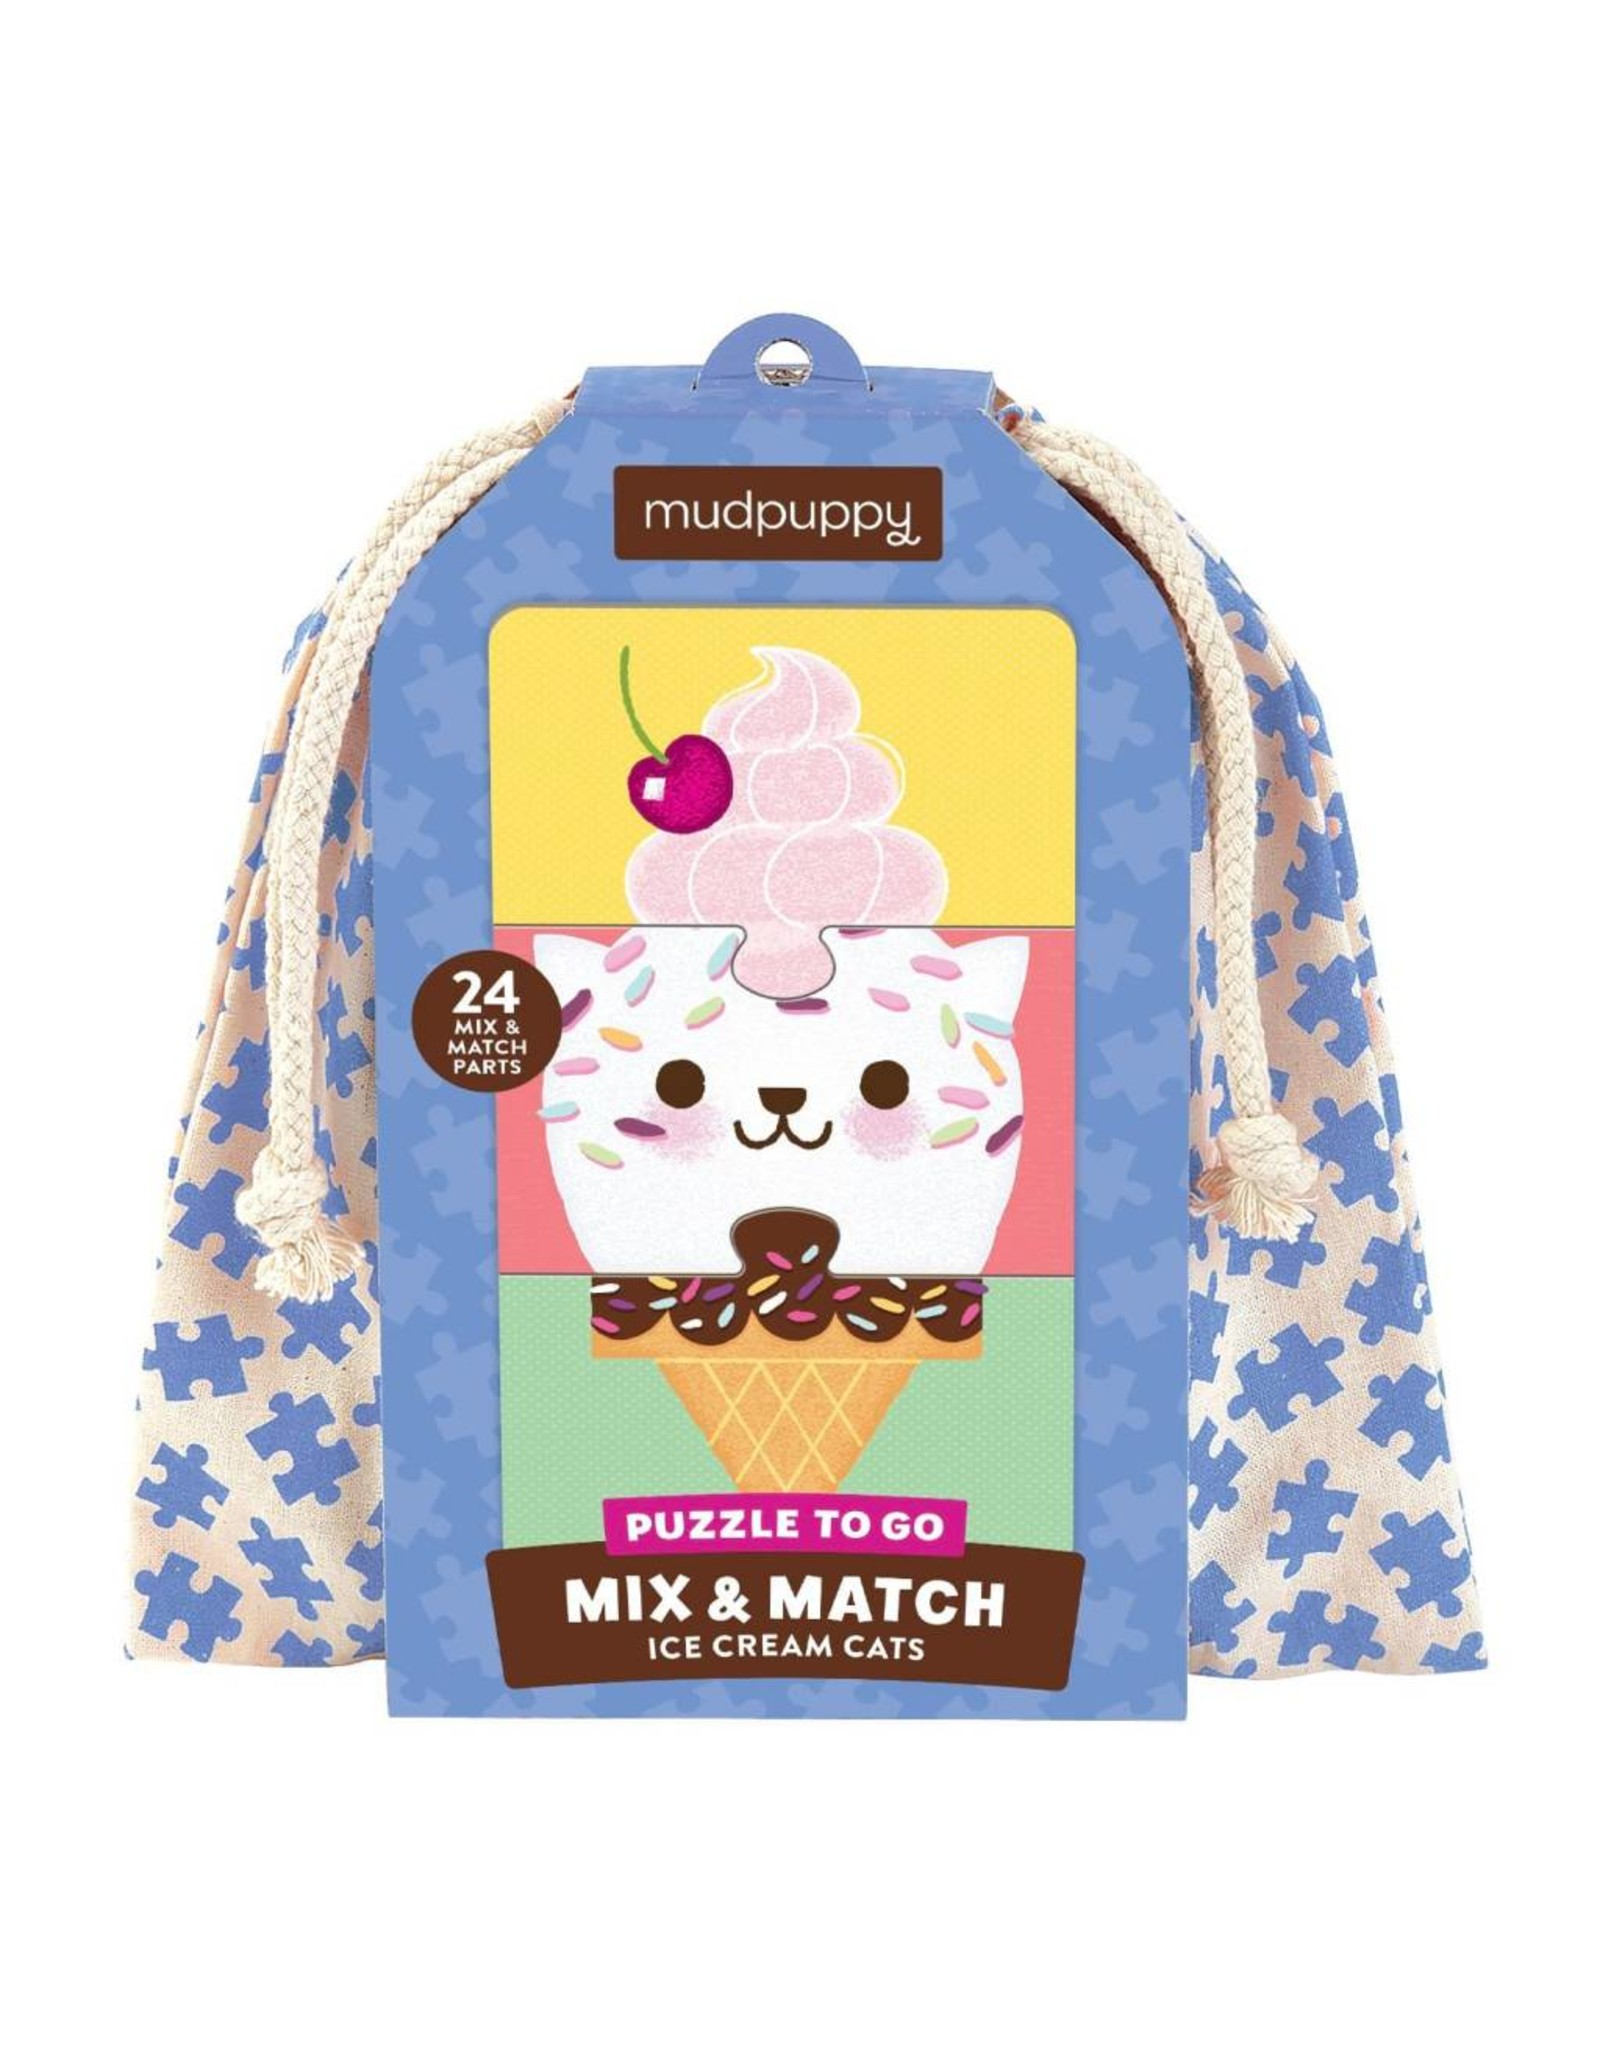 mudpuppy Ice Cream Cats Mix & Match Puzzle to Go